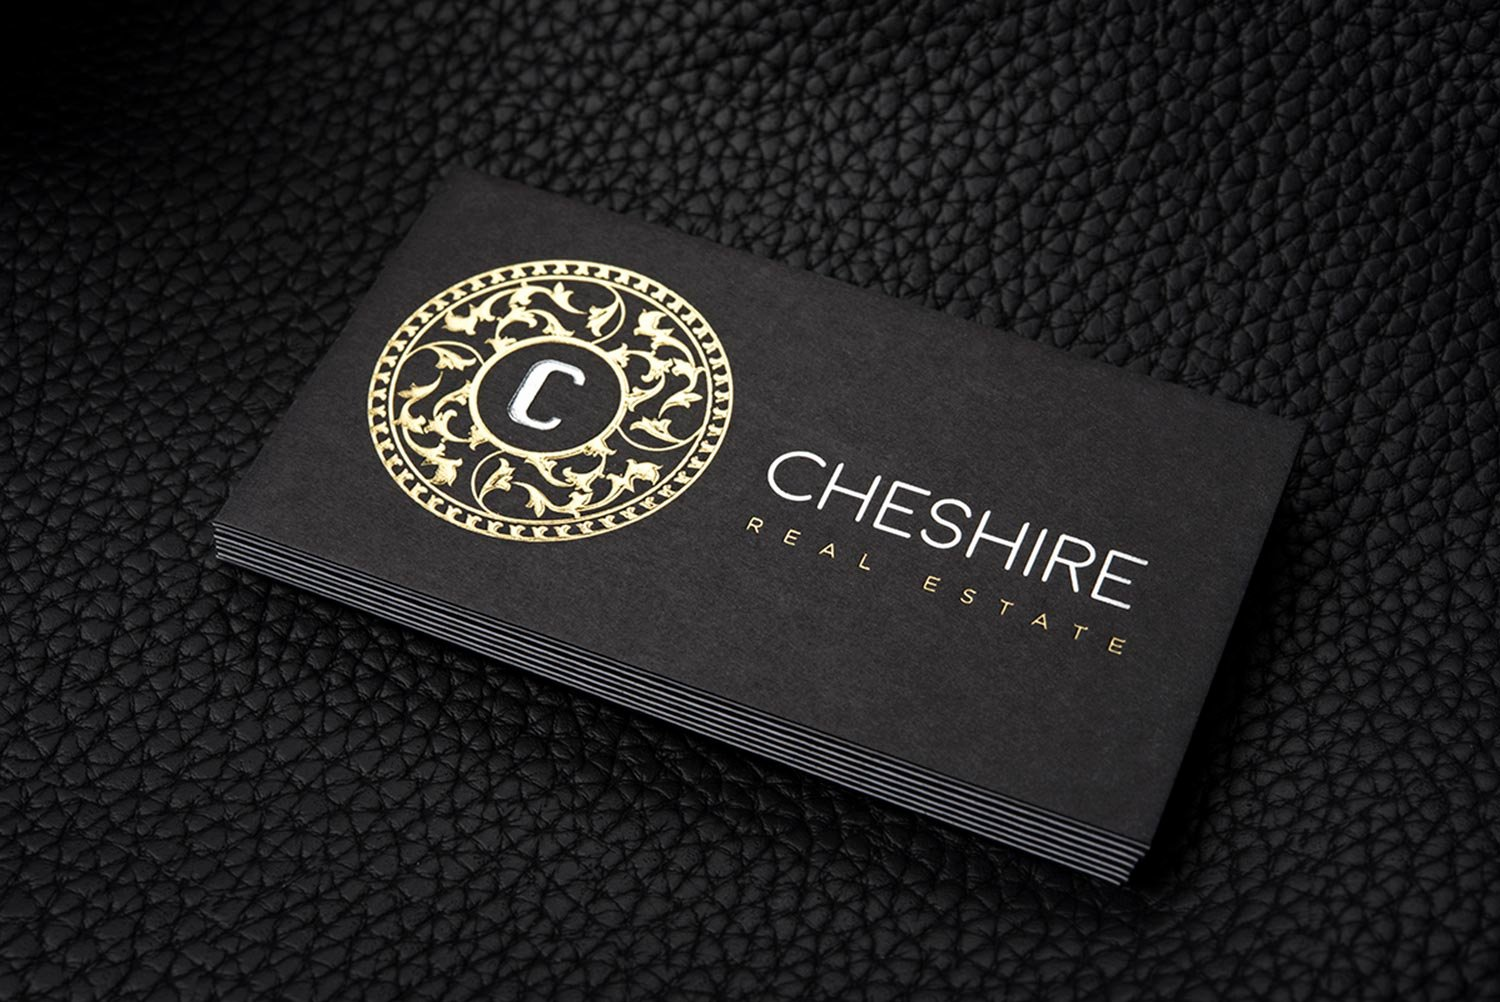 Black and Gold Business Cards Lovely Free Luxurious Gold and Silver Foil Black Business Card Template Cheshire